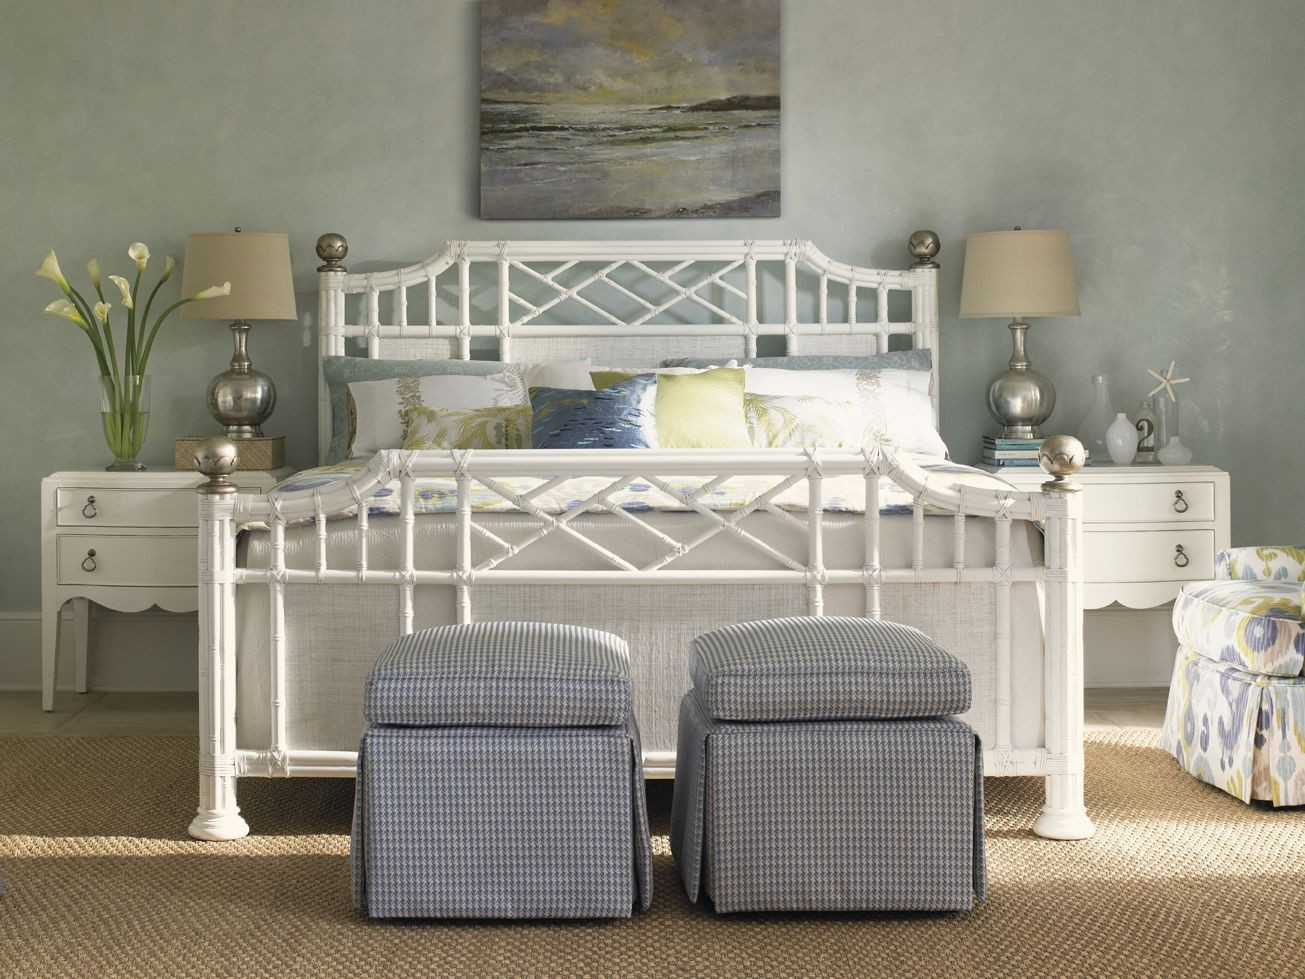 Ivory Key Pritchards Bay Panel Bedroom Set from Tommy